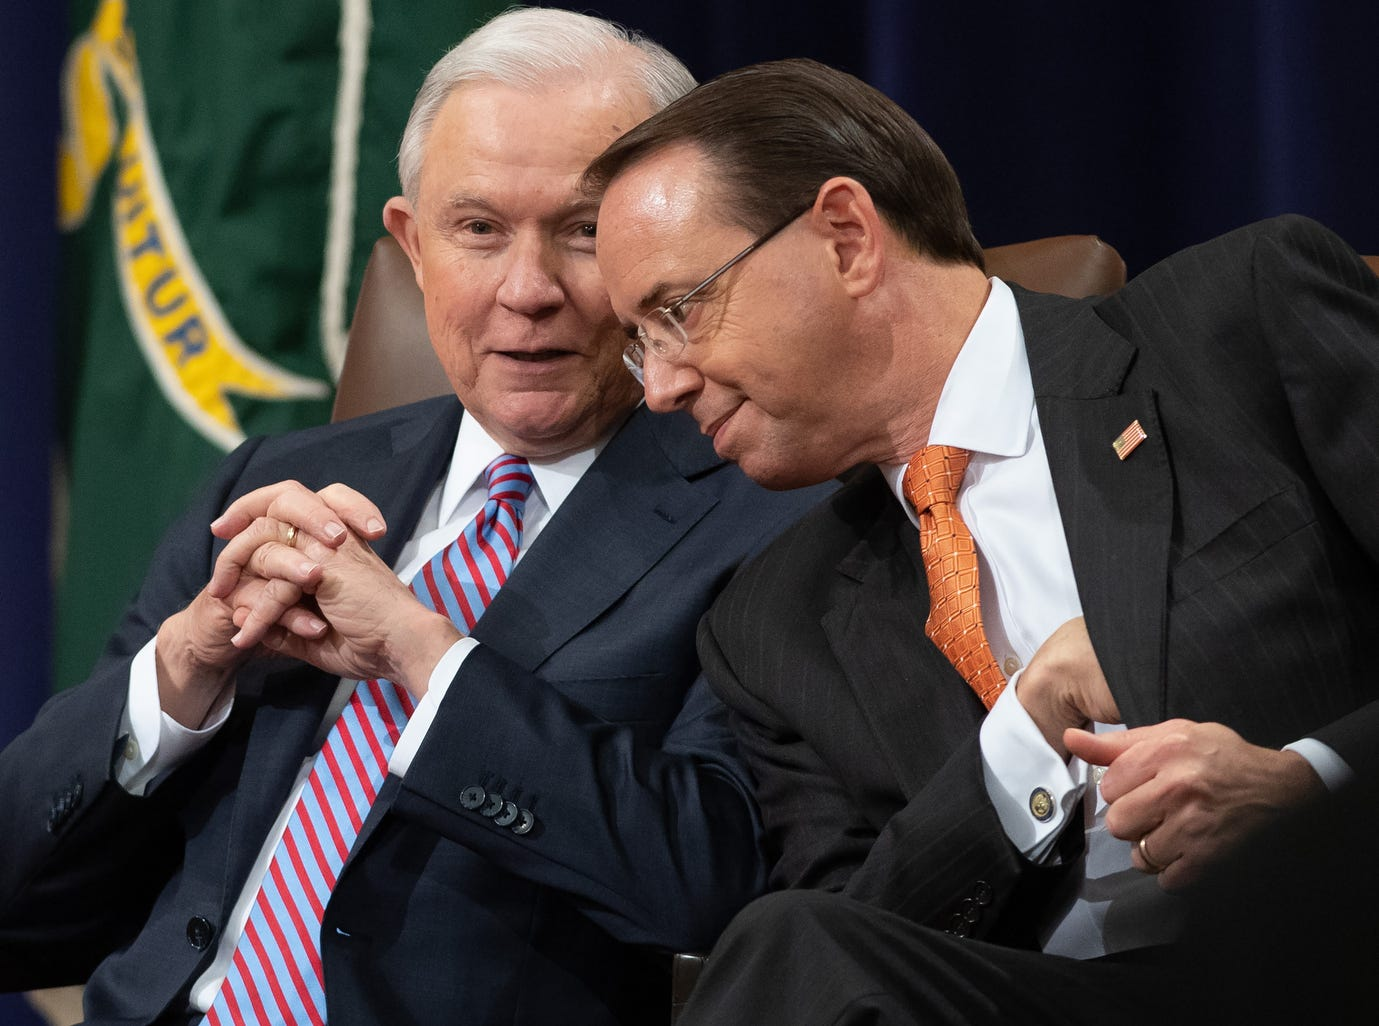 US Attorney General Jeff Sessions, left, and Deputy Attorney General Rod Rosenstein attend the Second Annual Attorney General's Award for Distinguished Service in Policing at the Department of Justice, Sept. 18, 2018. Both are Republicans but have faced the wrath of President Trump as they discharge their duties while Special Council Robert Mueller continues his investigation into Russian medaling in the US election.